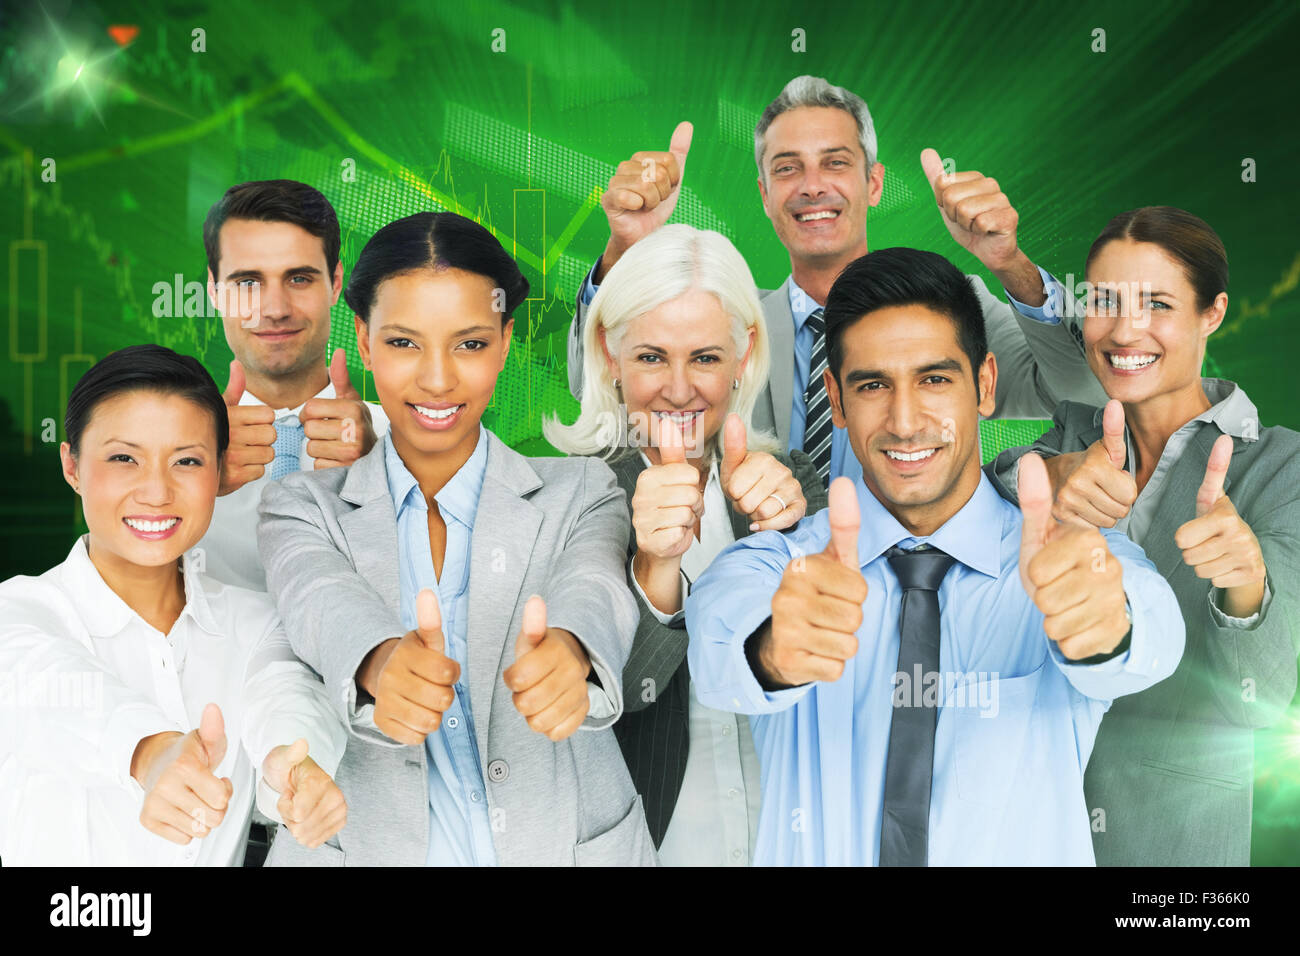 Composite image of happy business people with thumbs up looking at camera - Stock Image